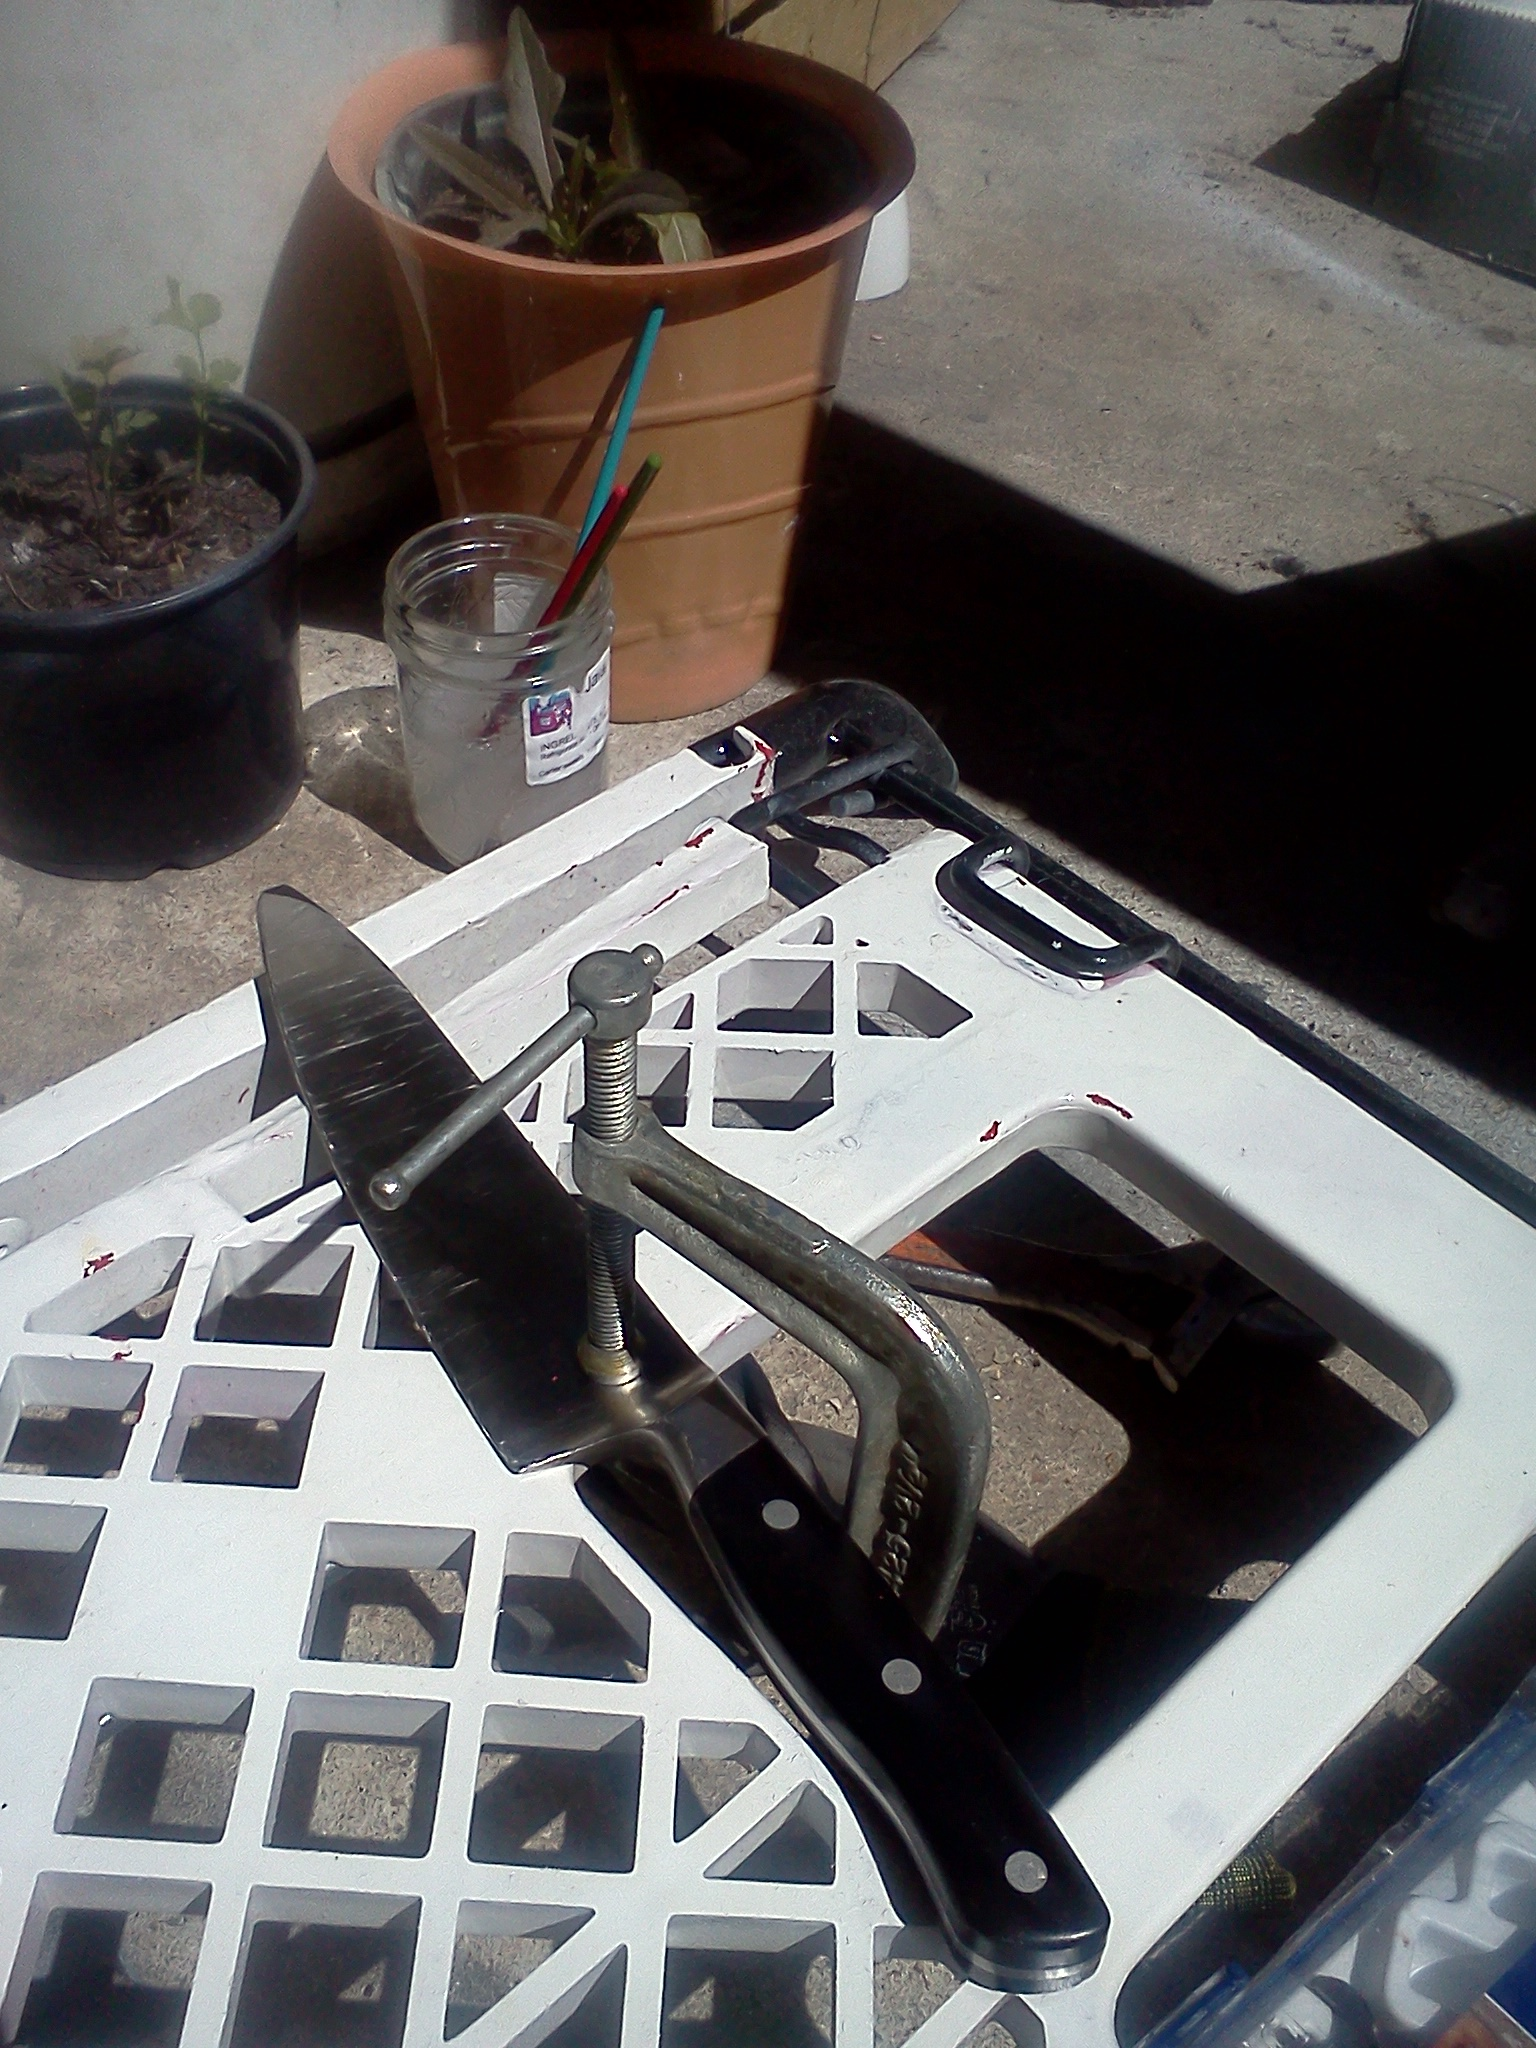 Picture of Clamp the Knife to a Work Surface